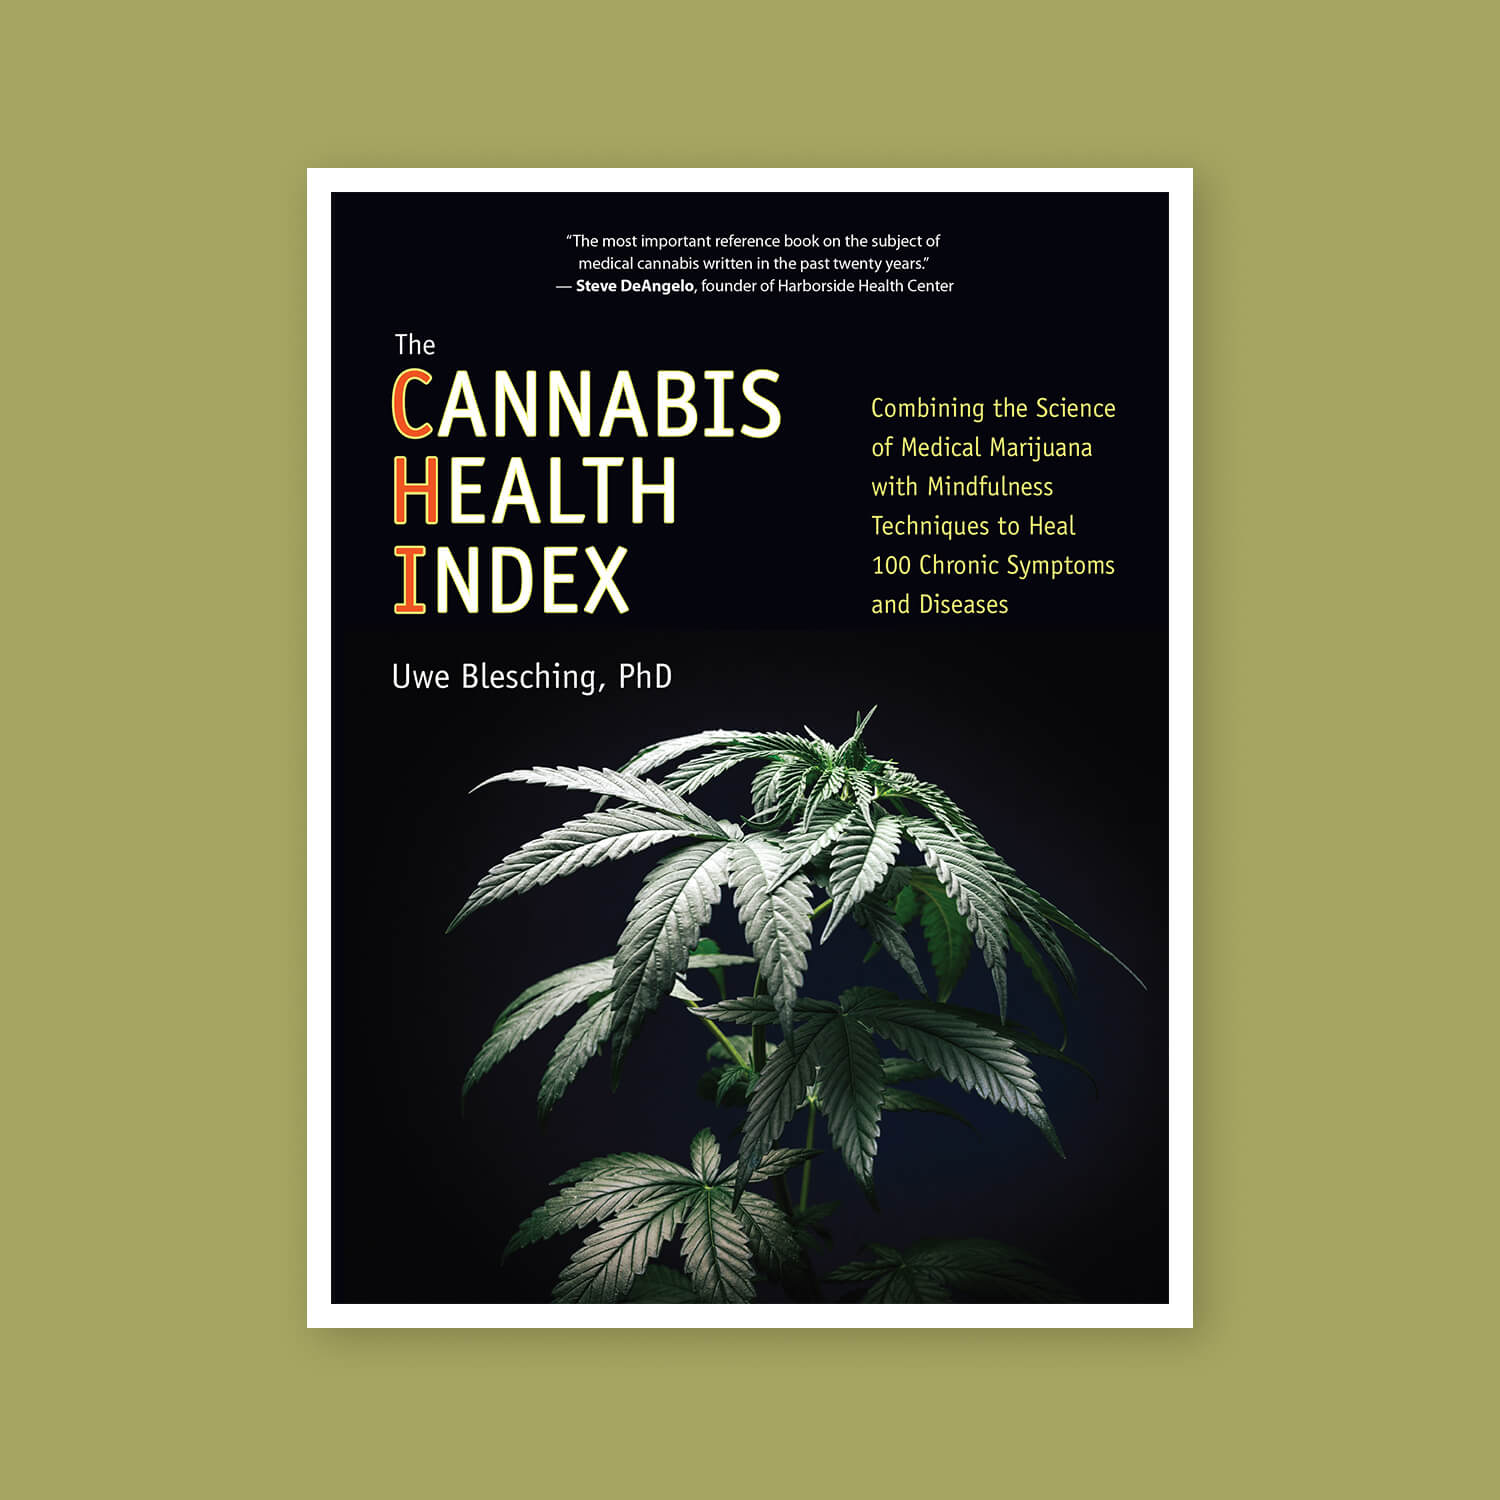 Cannabis Health Index - Goldleaf Bookshelf